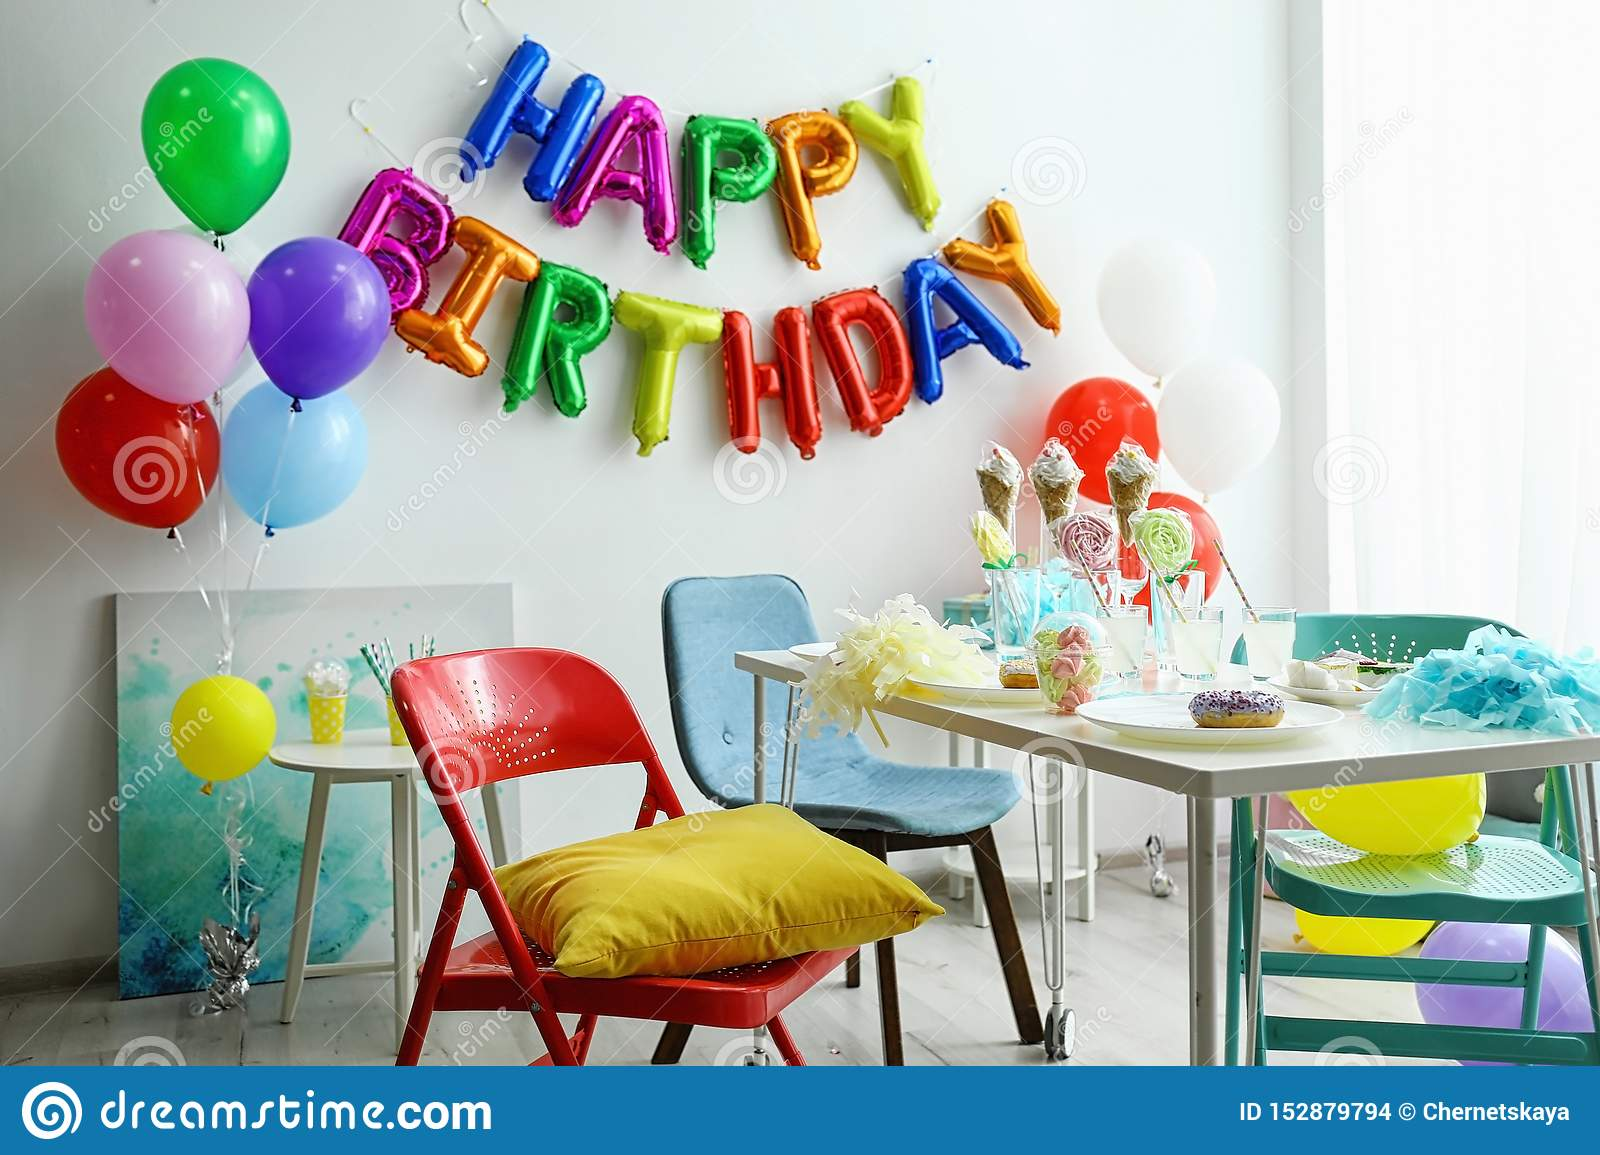 Table with treats and phrase HAPPY BIRTHDAY made of colorful balloon letters